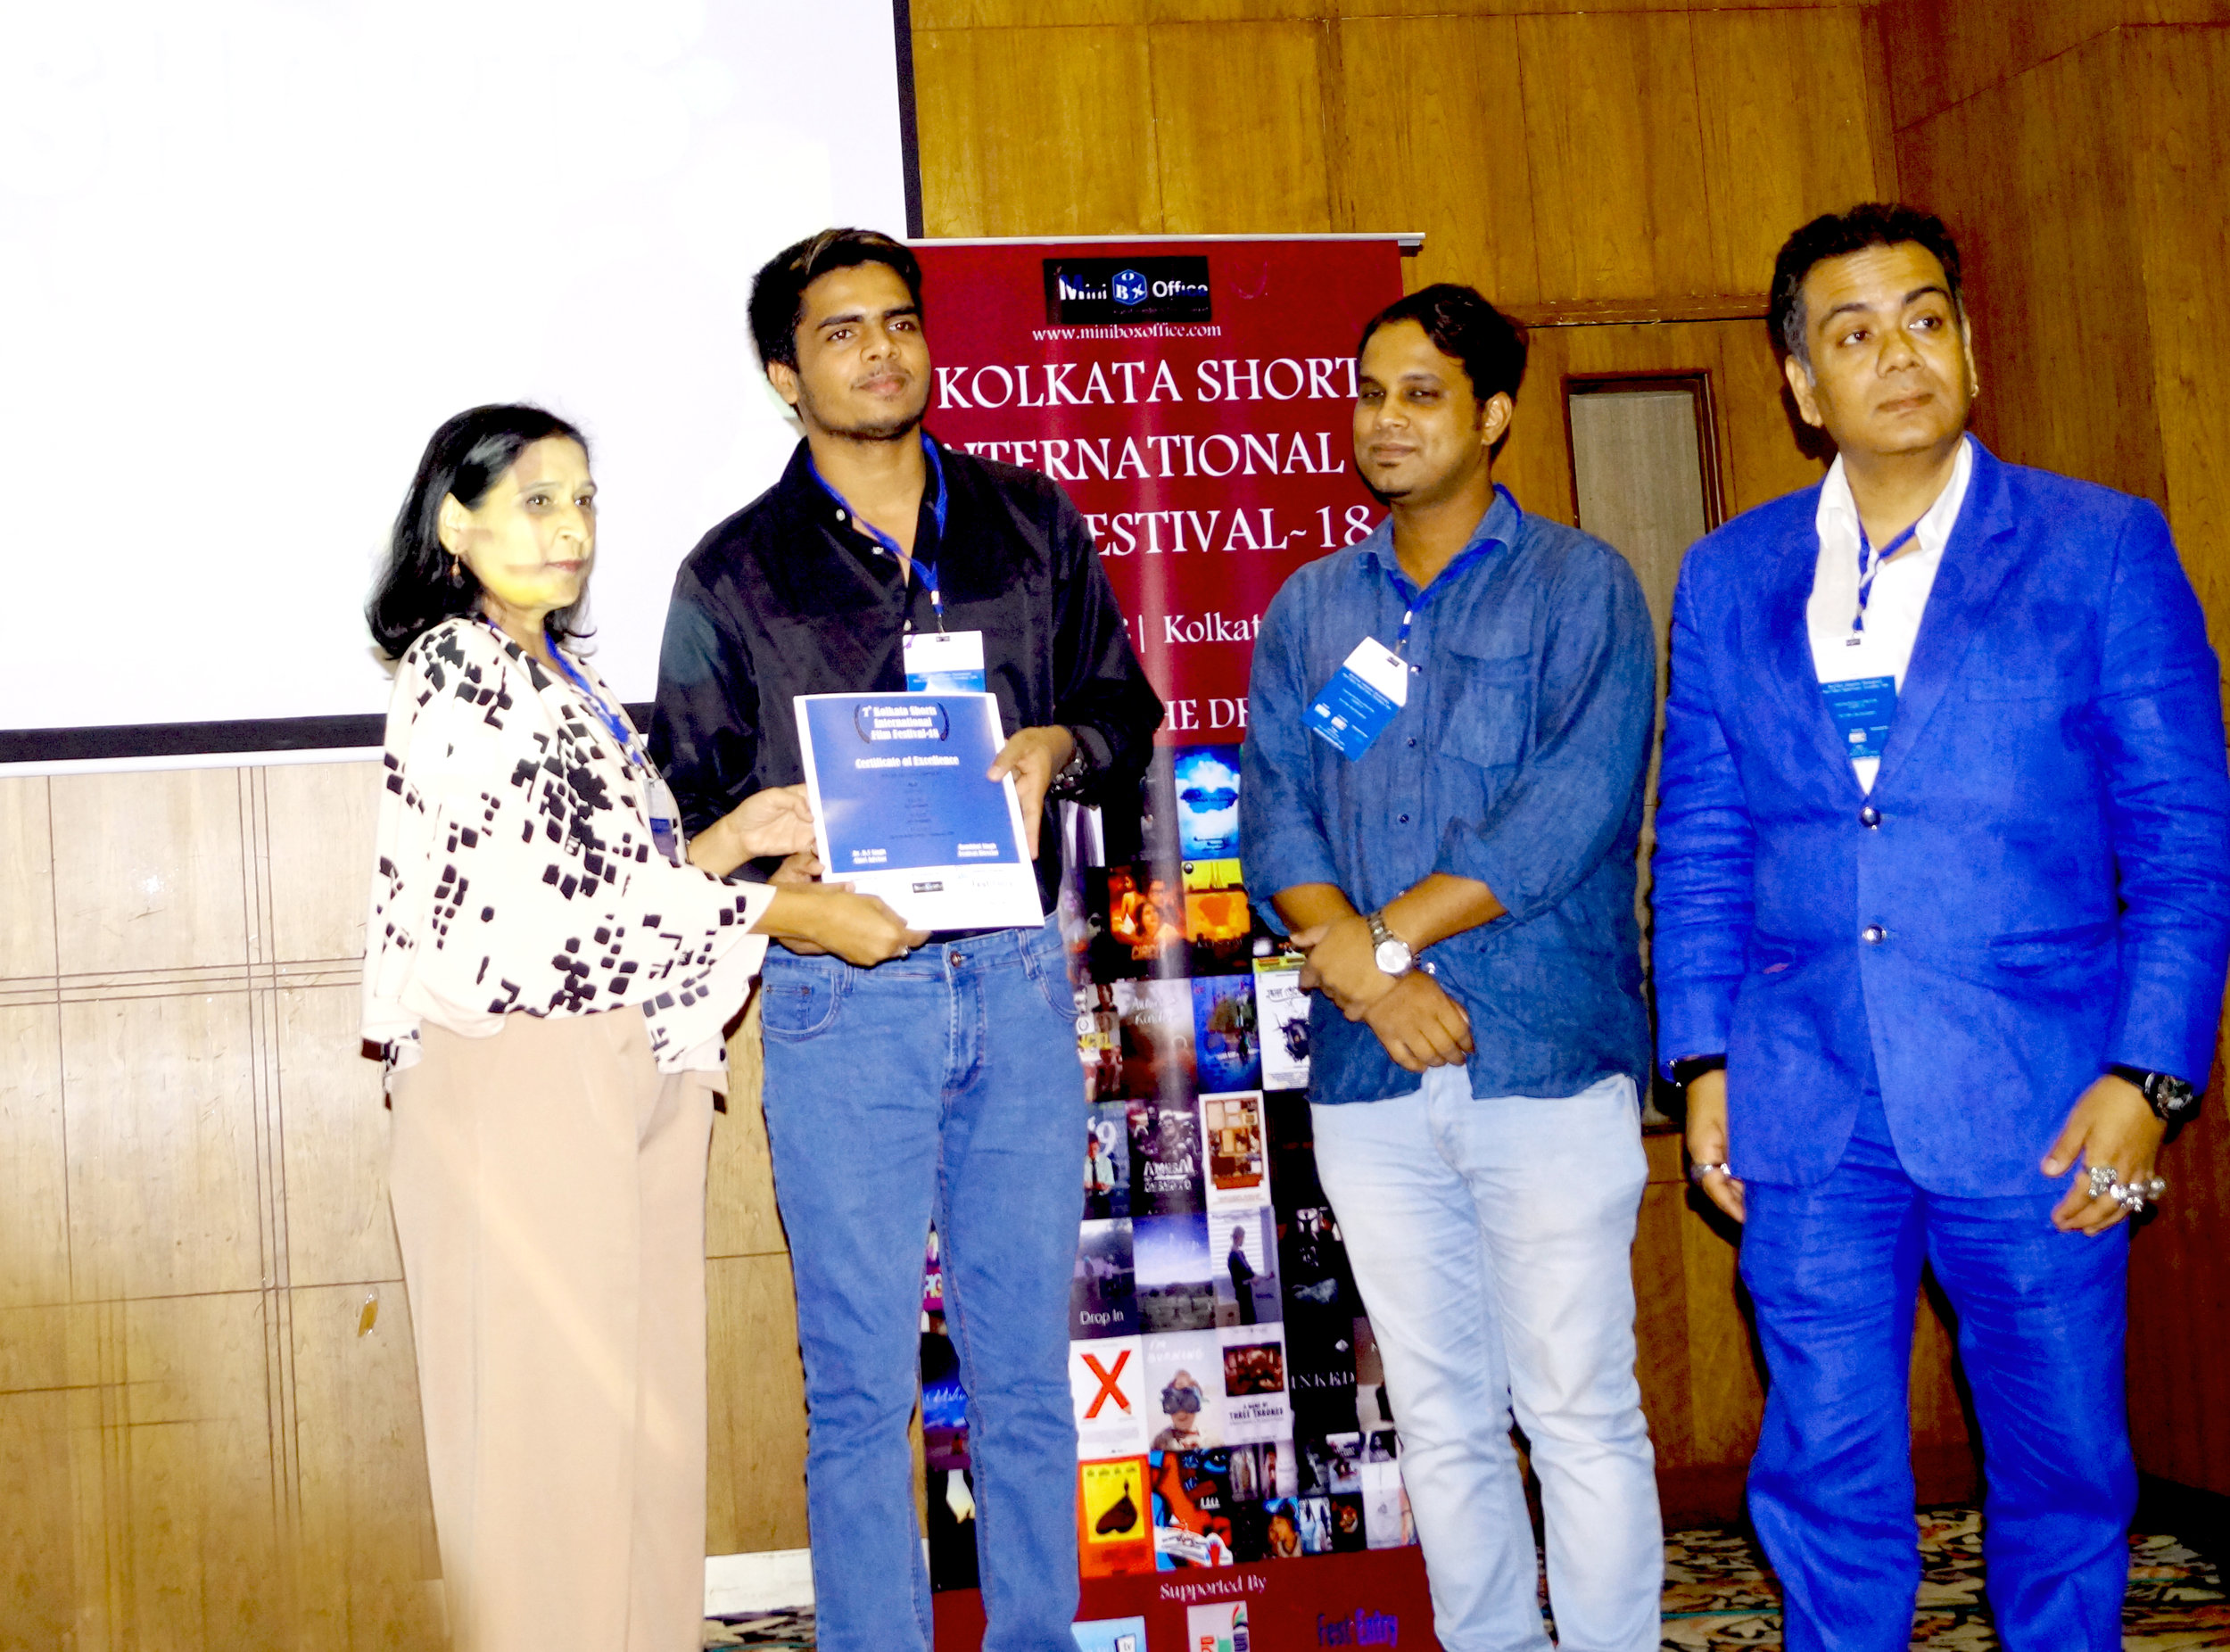 Our Media Executive Rupesh Sahu (2nd from left) collecting the certificate